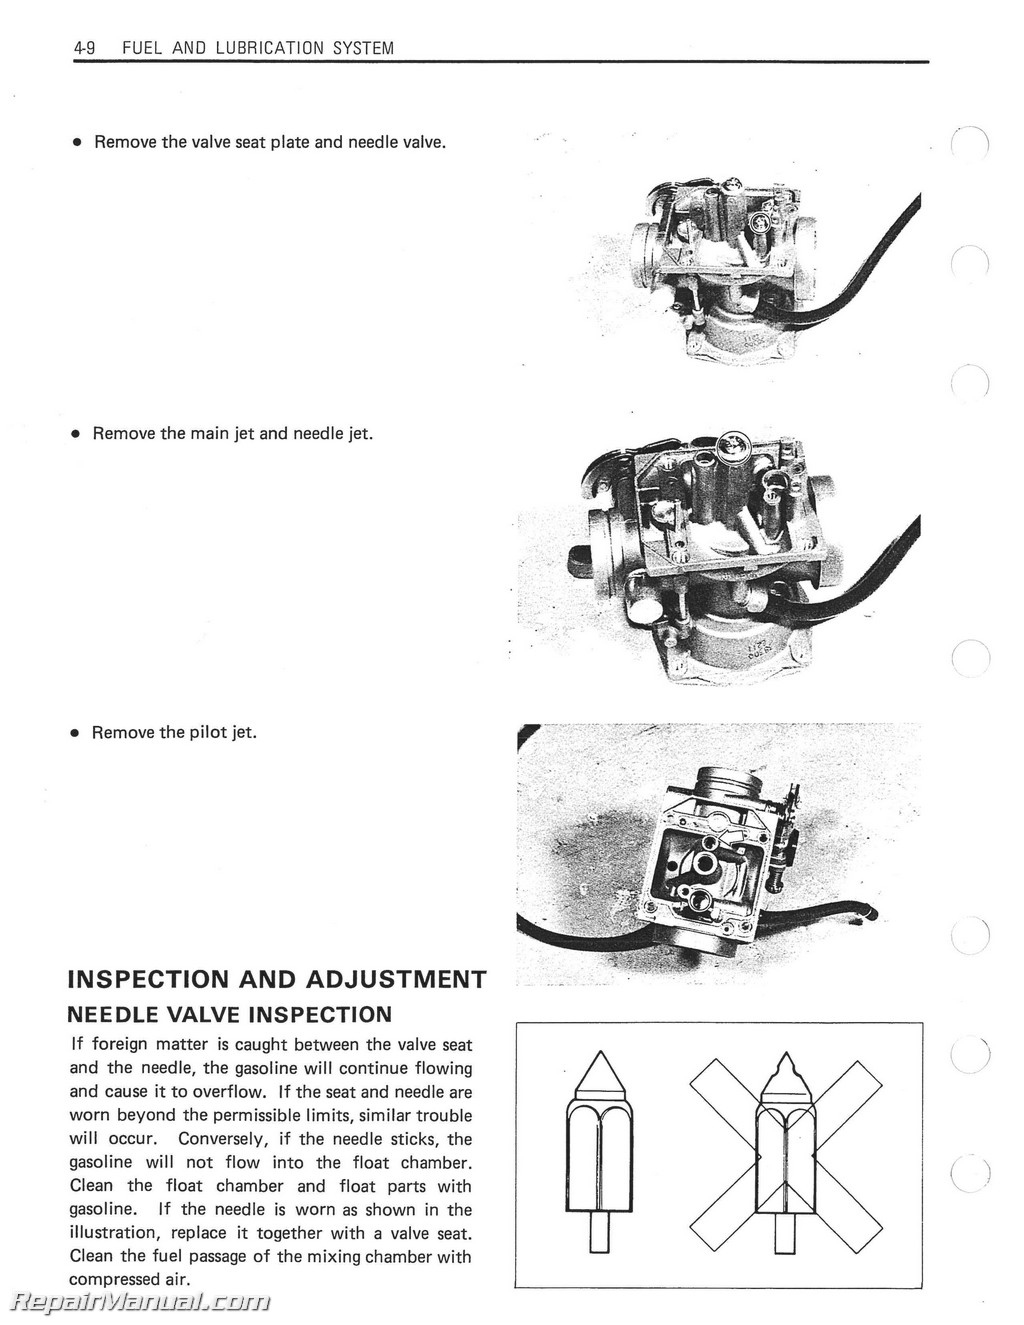 85 suzuki lt 250 wiring schematics suzuki gn 250 wiring harness diagram engine suzuki gn 250 wiring harness diagram engine | wiring library #12